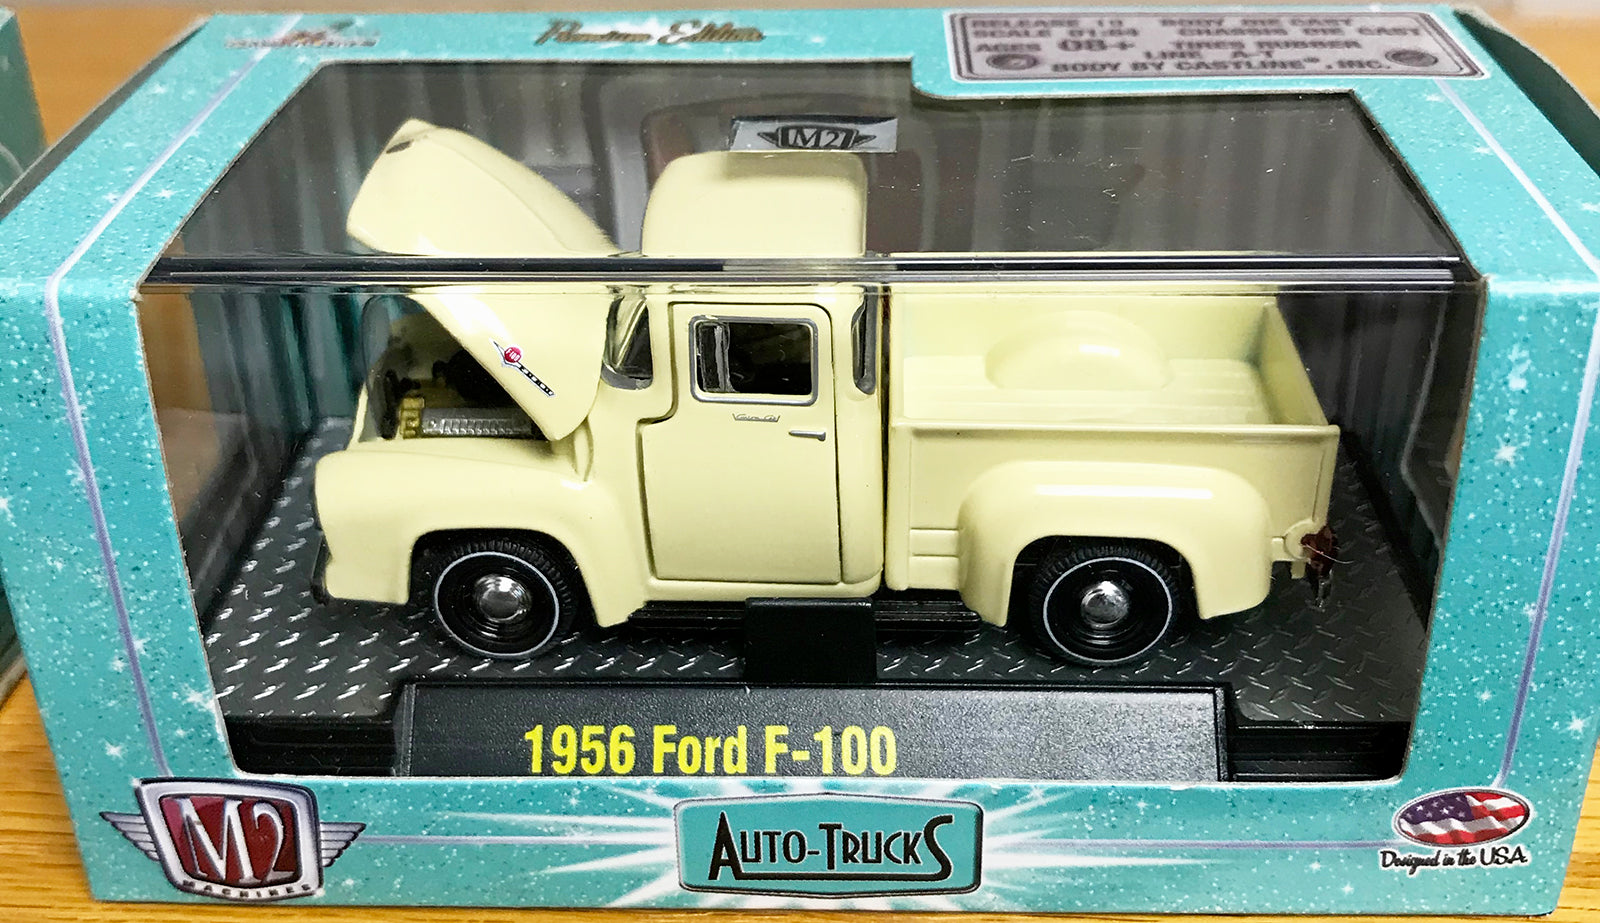 S 1956 Ford F-100 Pickup - Beige